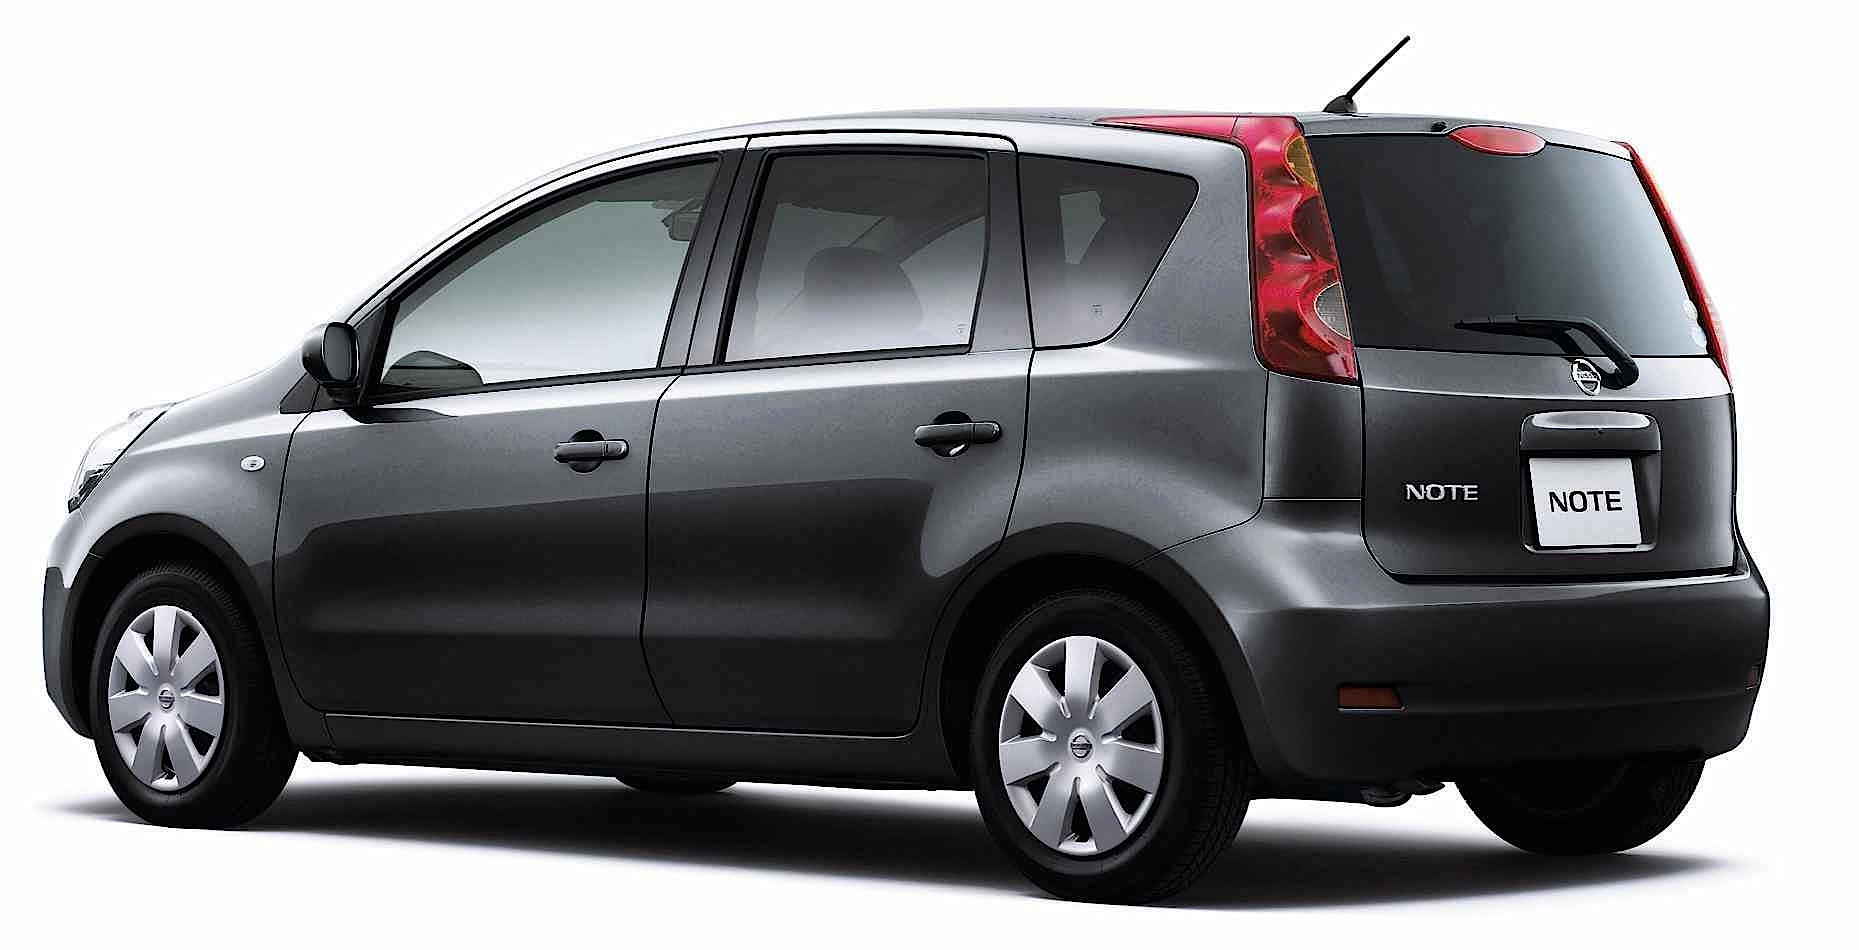 2012 Nissan Note #4